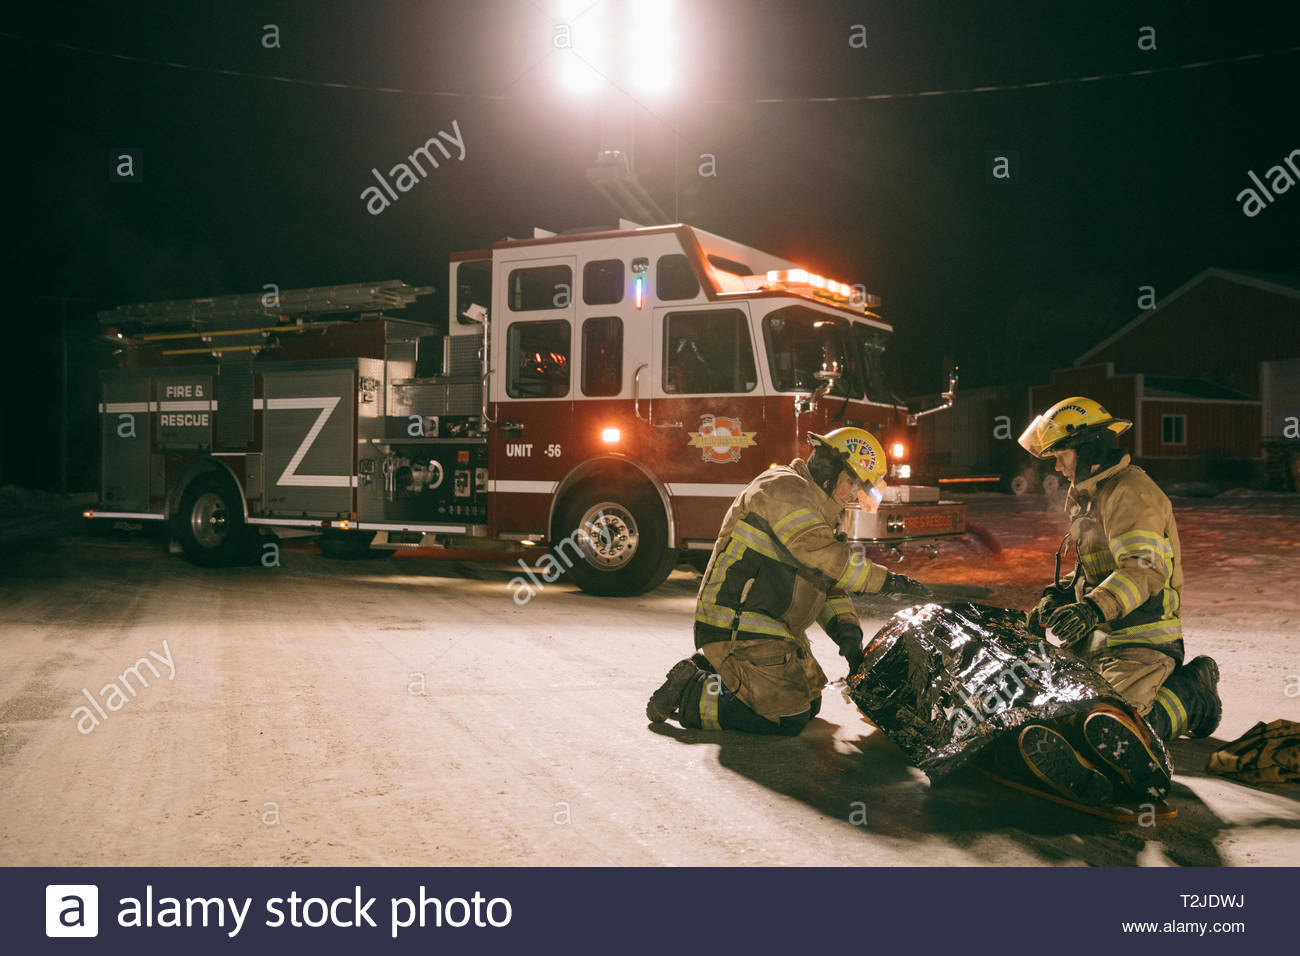 Firefighters tending to victim at scene of accident - Stock Image